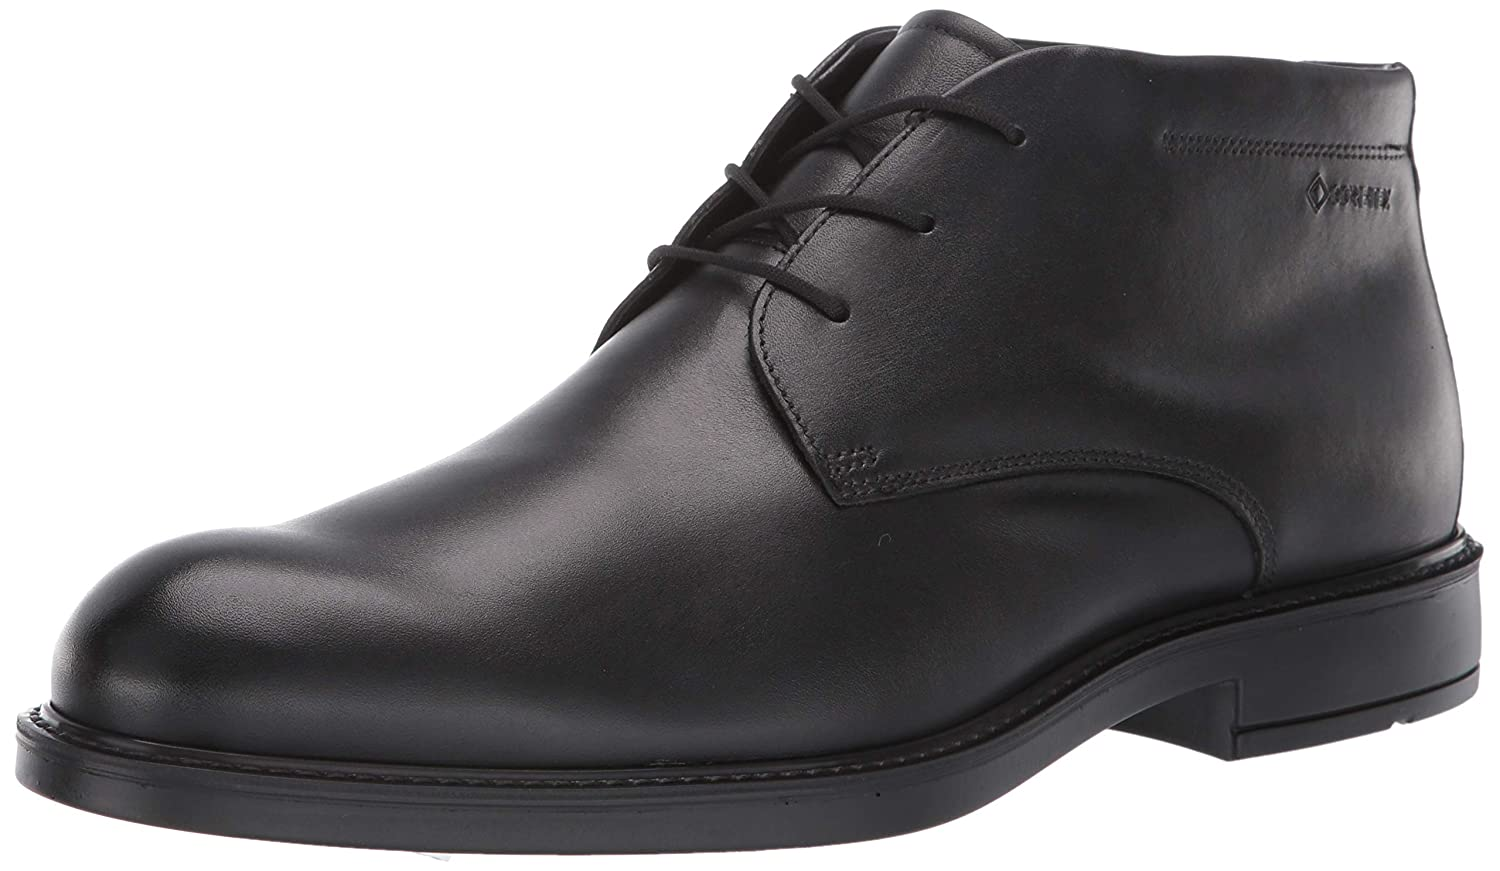 Image of ECCO Men's Vitrus Iii Gore-tex Chukka Boot Chukka